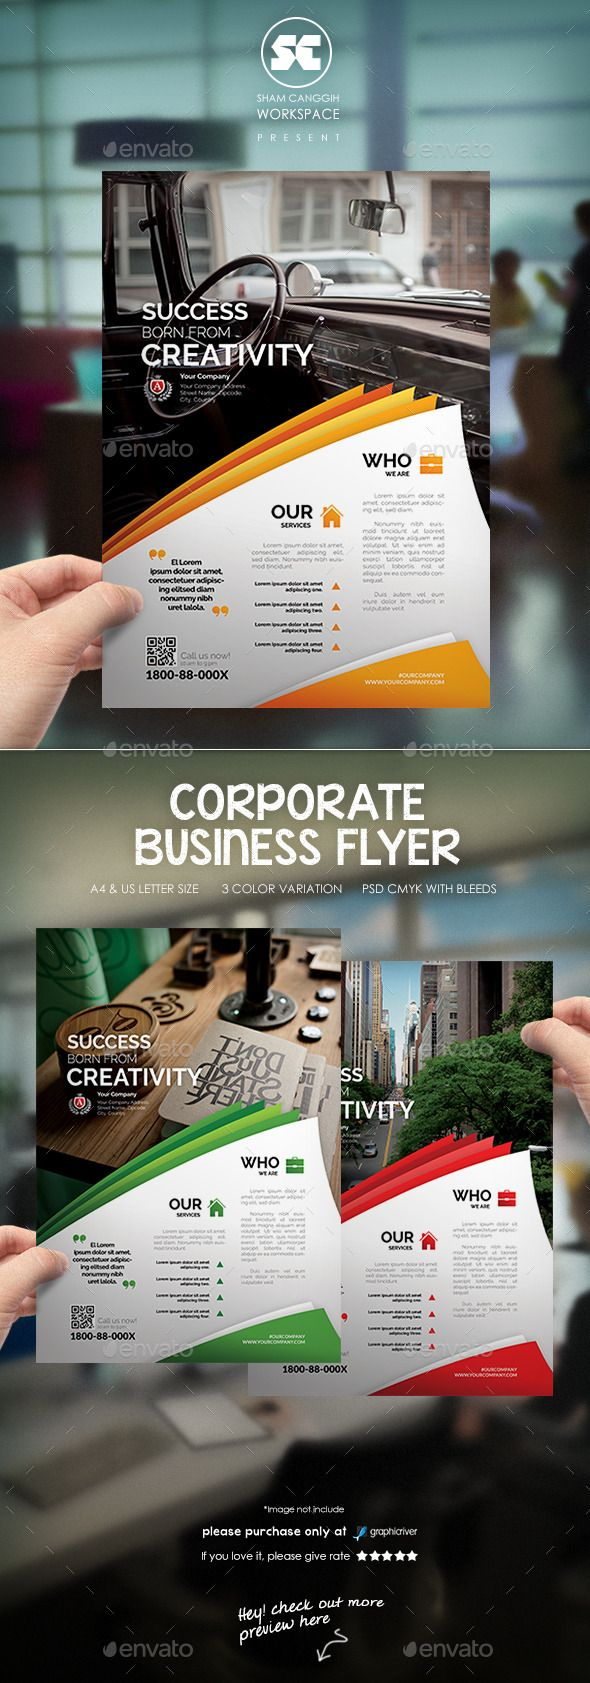 Corporate Business Flyer Template PSD #design Download: http://graphicriver.net/item/corporate-business-flyer/12837868?ref=ksioks